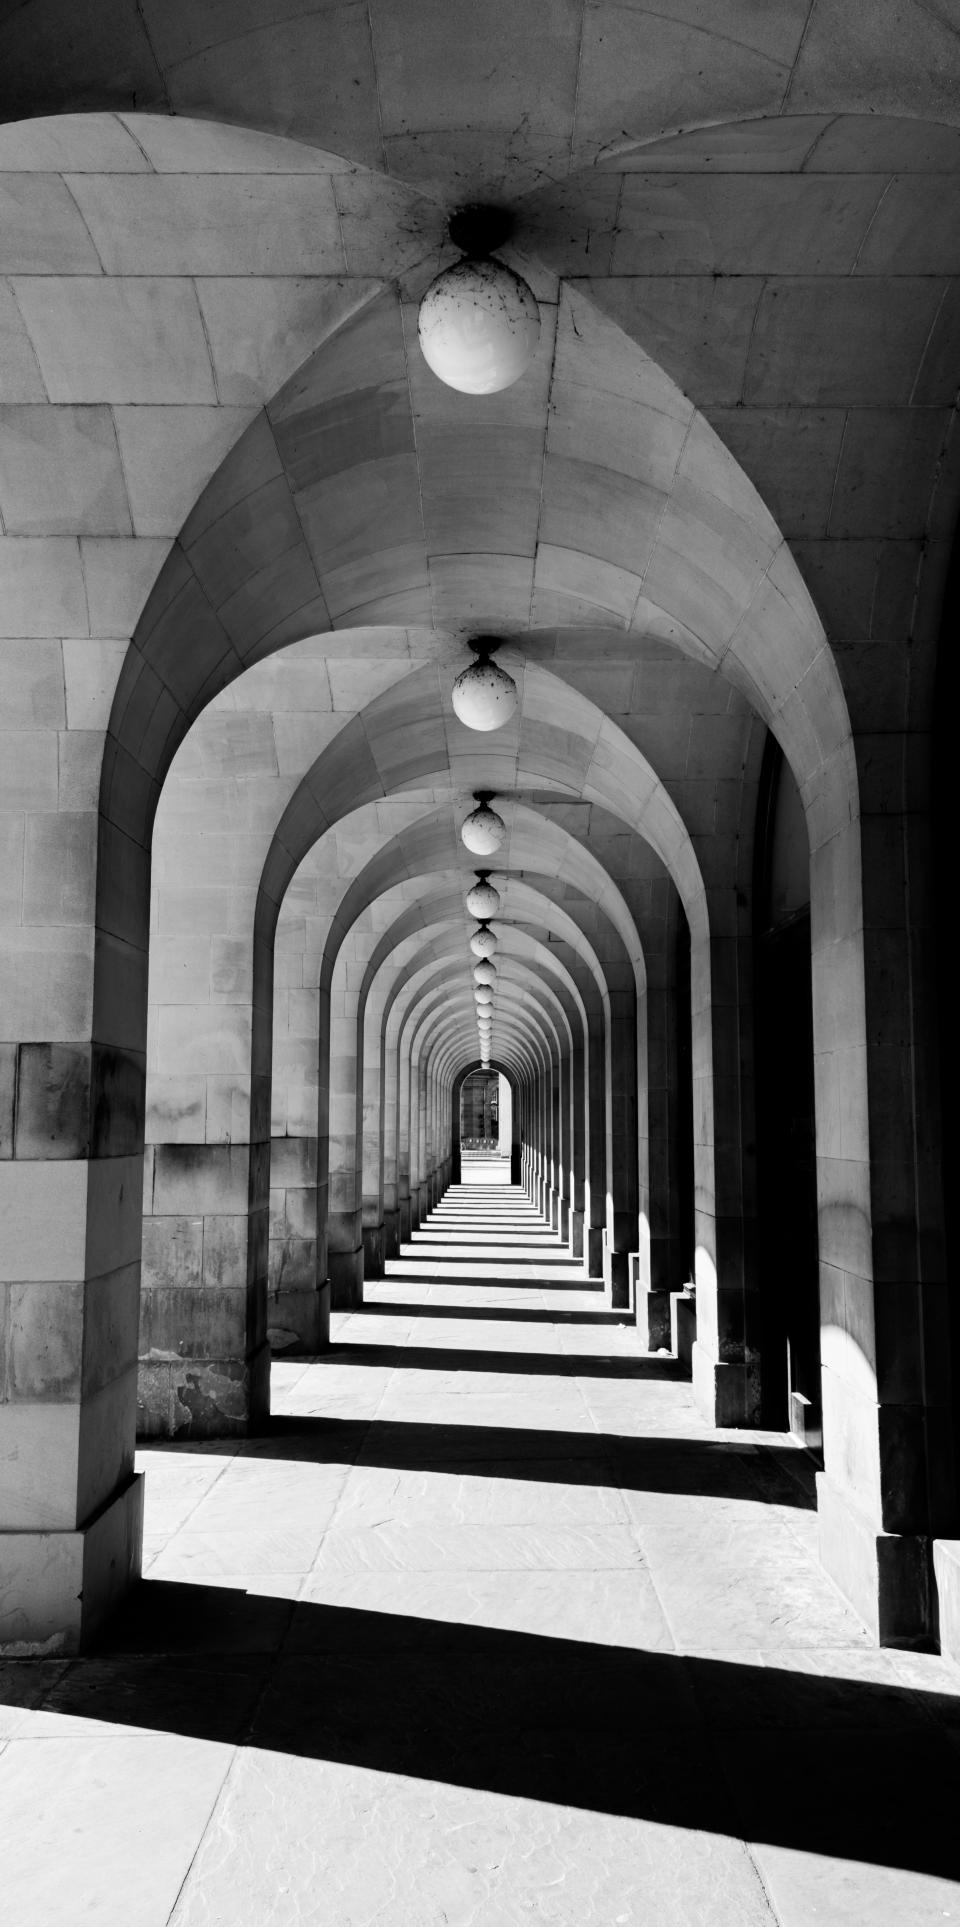 architecture, building, infrastructure, sunny, hallway, light, bulb, black and white